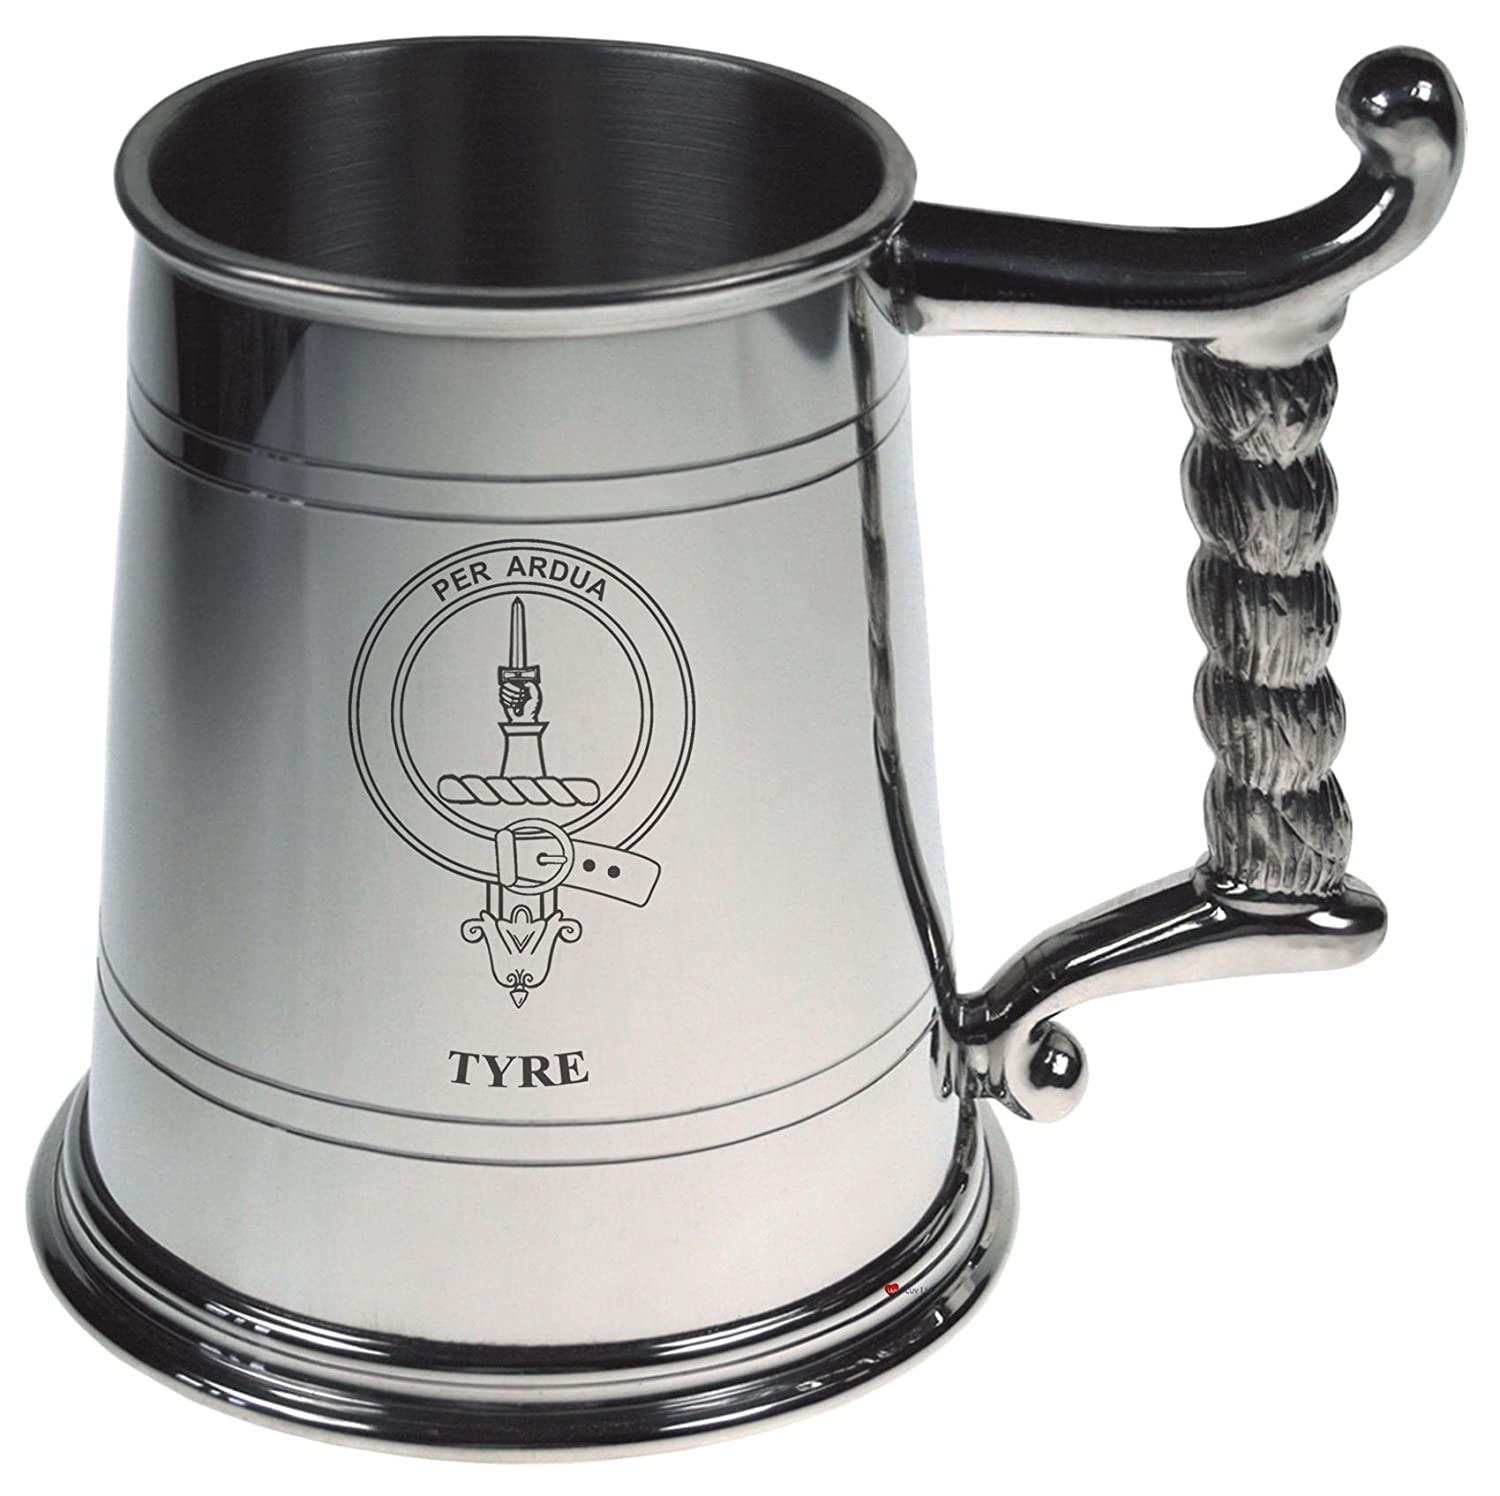 Tyre Crest Tankard with Rope Handle in Polished Pewter 1 Pint Capacity